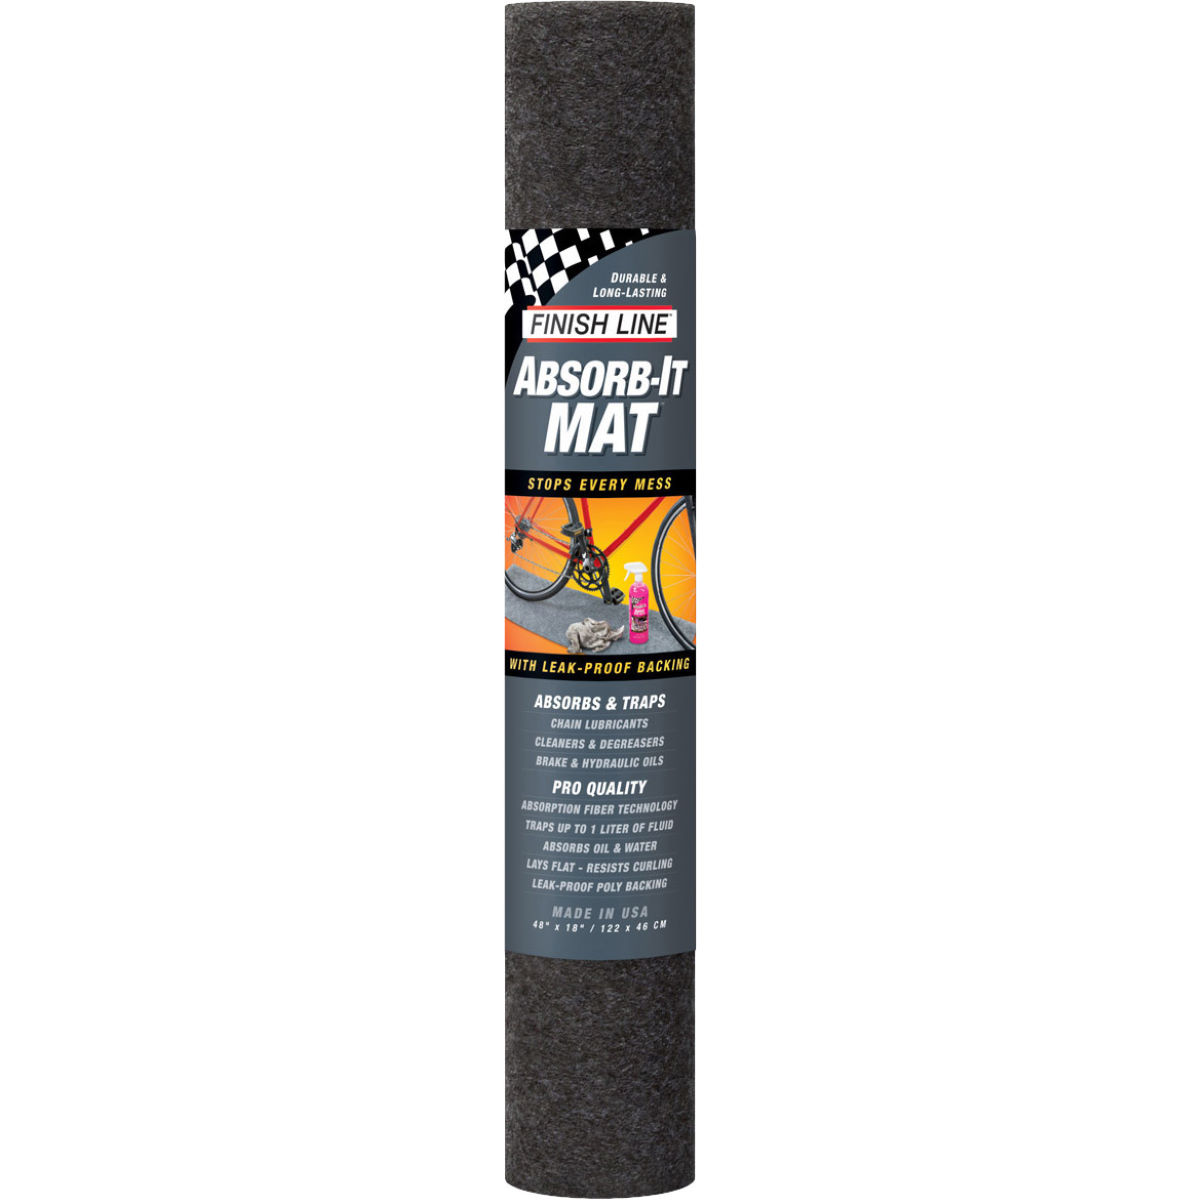 Finish Line Finish Line Absorb-It Mat   Cleaning Equipment